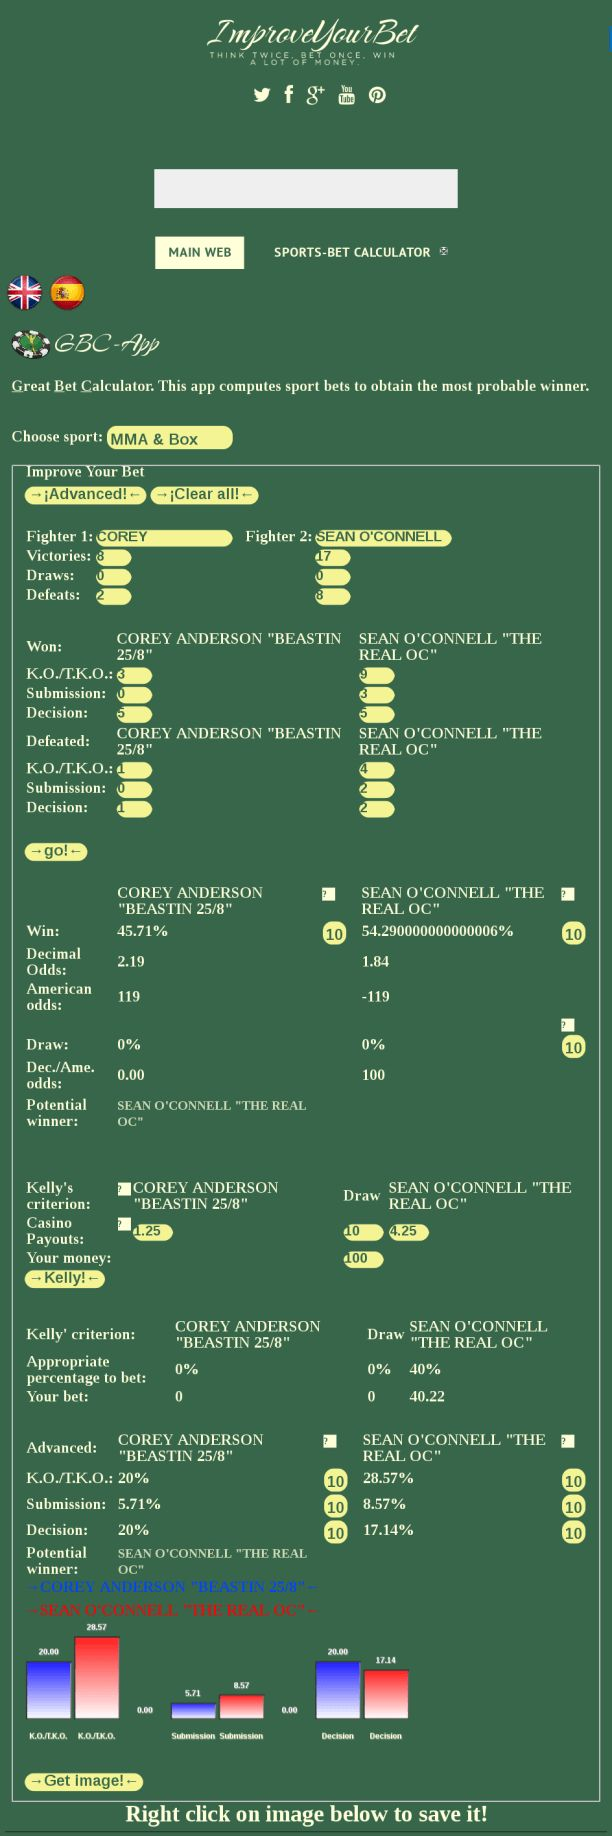 ufc-fight-night-forecast-and-predictions-corey-anderson-vs-sean-oconnell